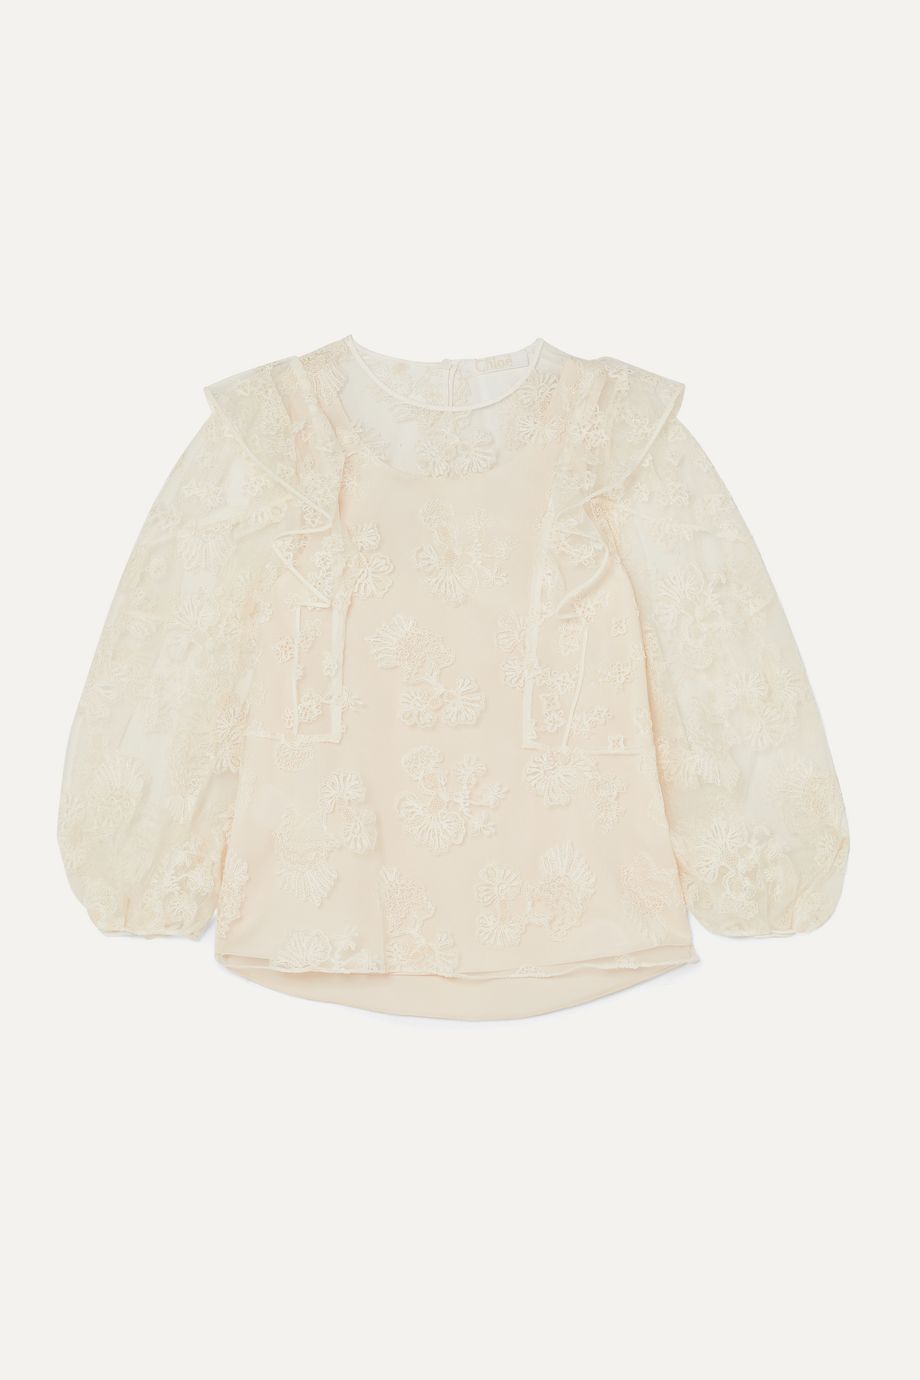 Chloé Ruffled embroidered tulle blouse